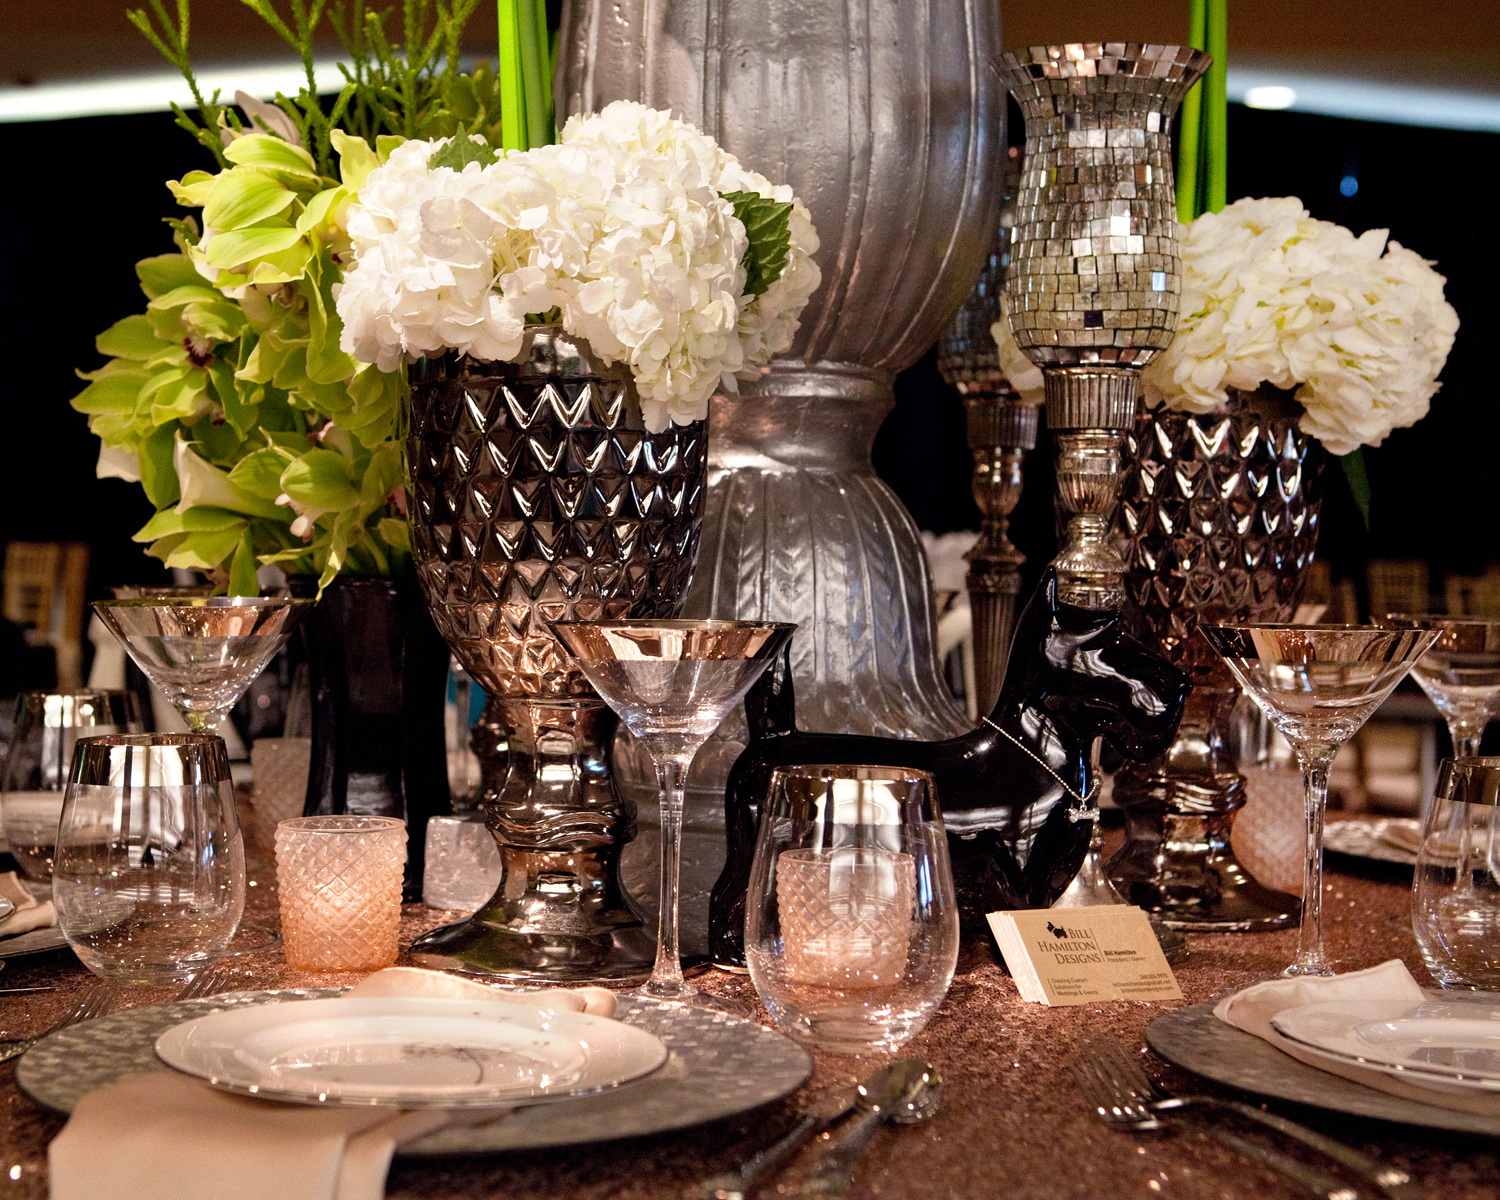 Bill Hamilton Designs creates tablescape for Cleary University